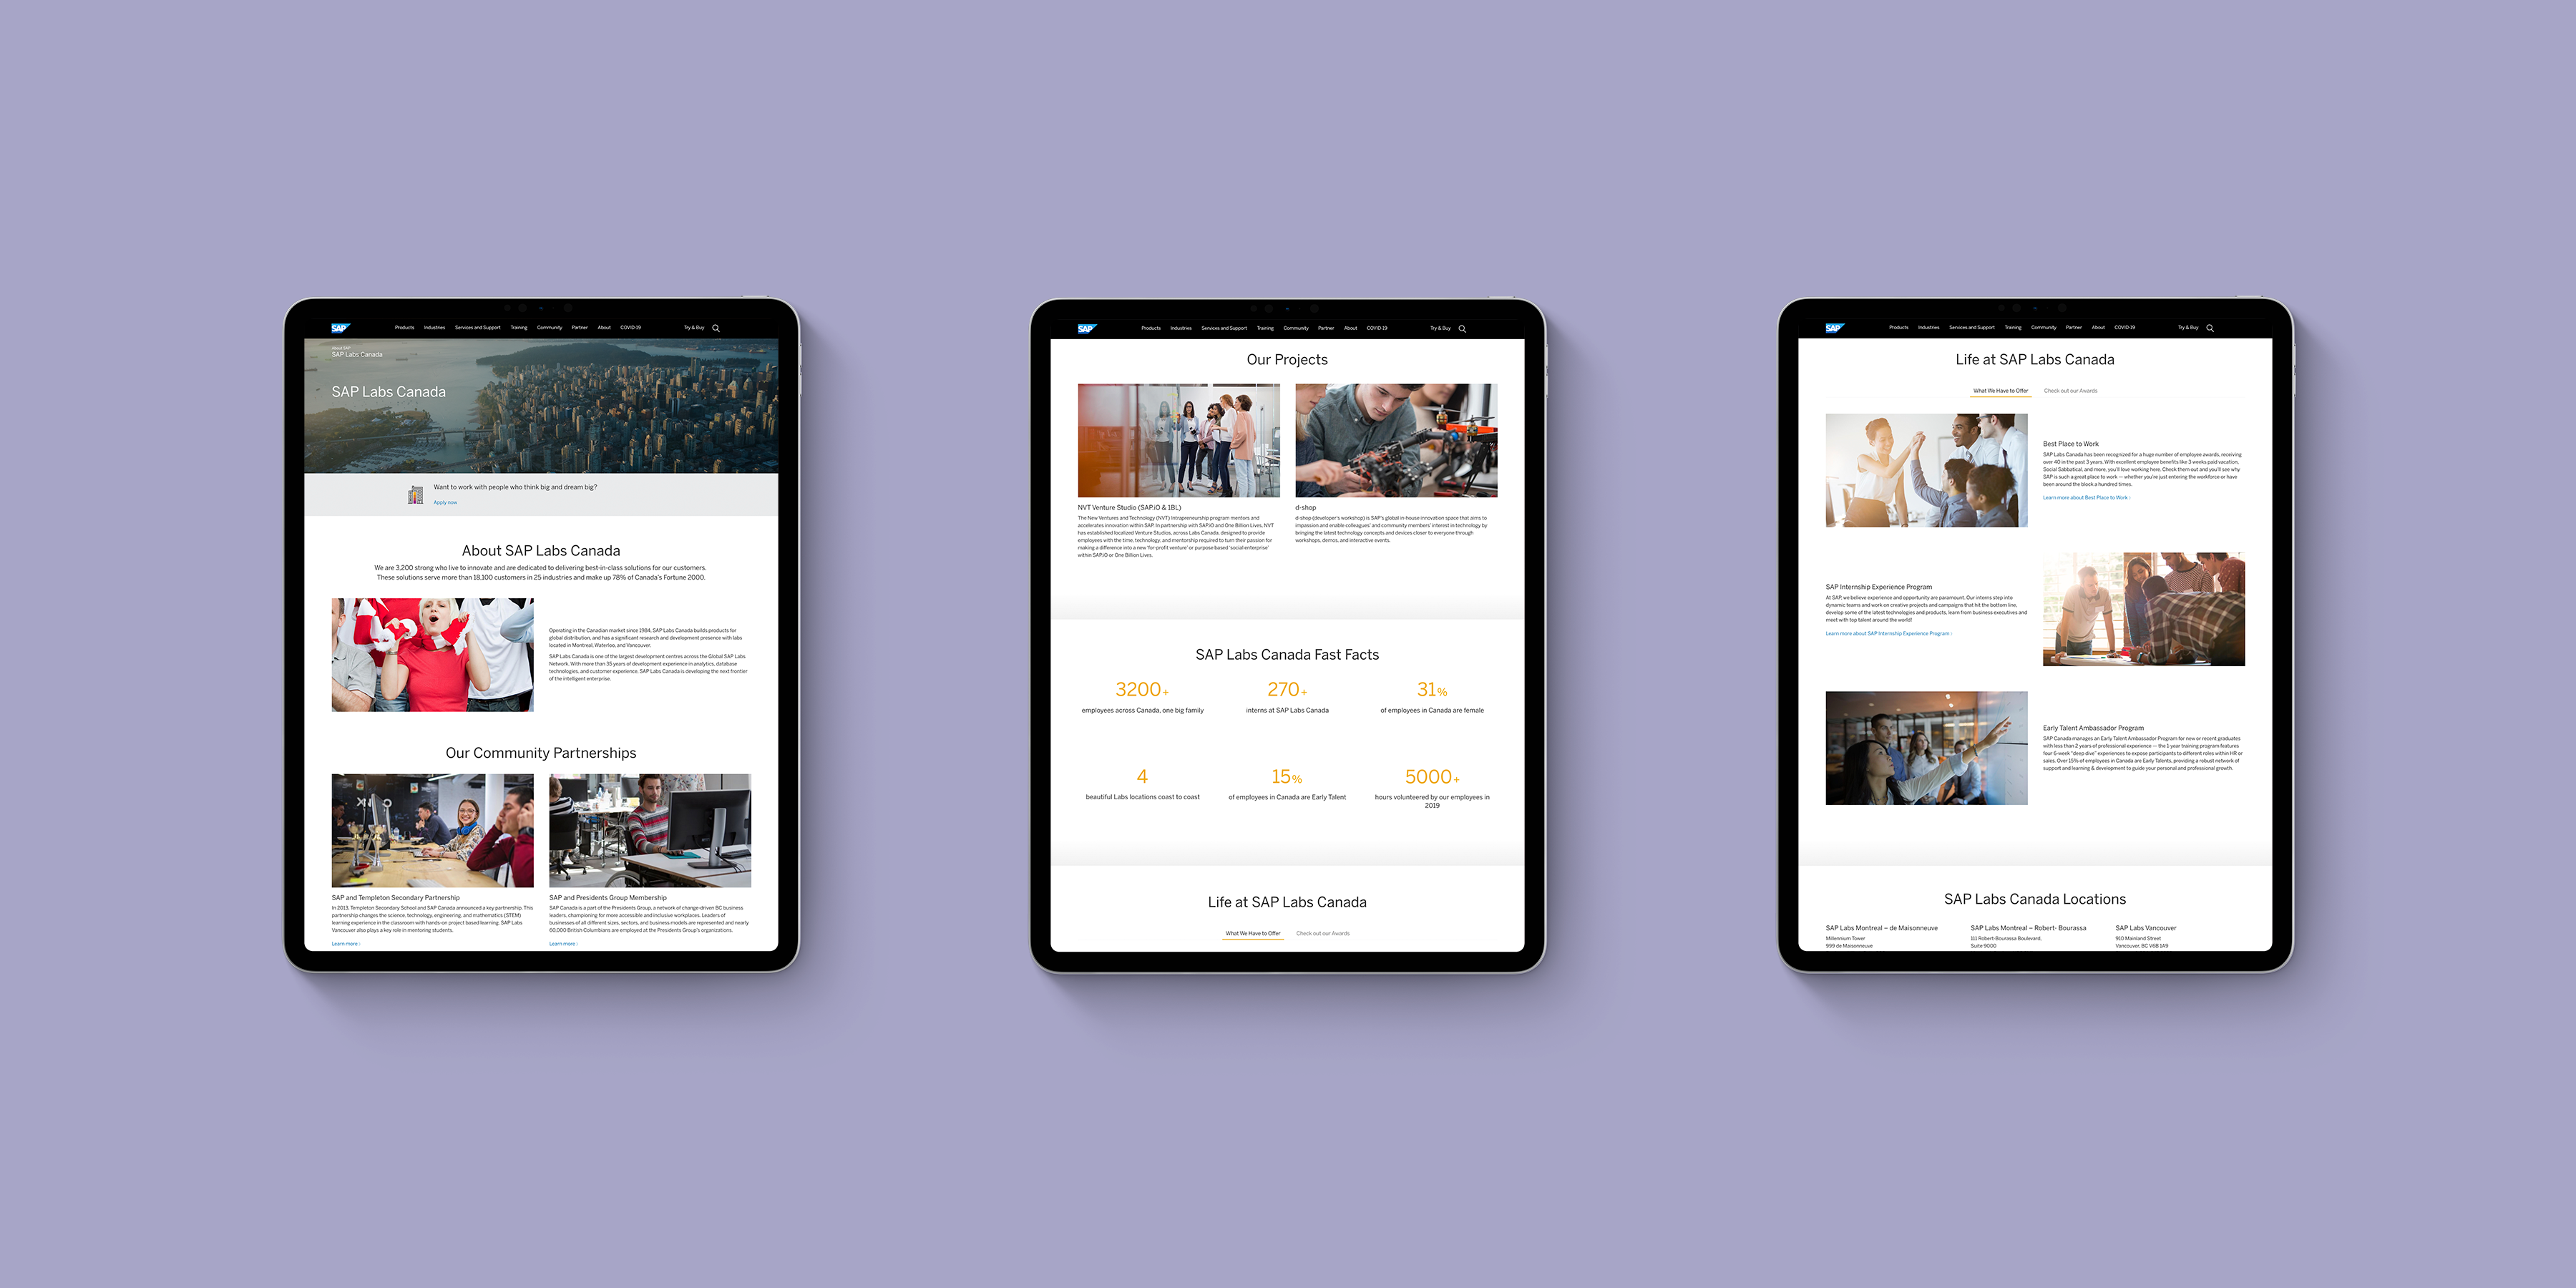 3 iPad Pro mockups with SAP Labs Canada landing page loaded